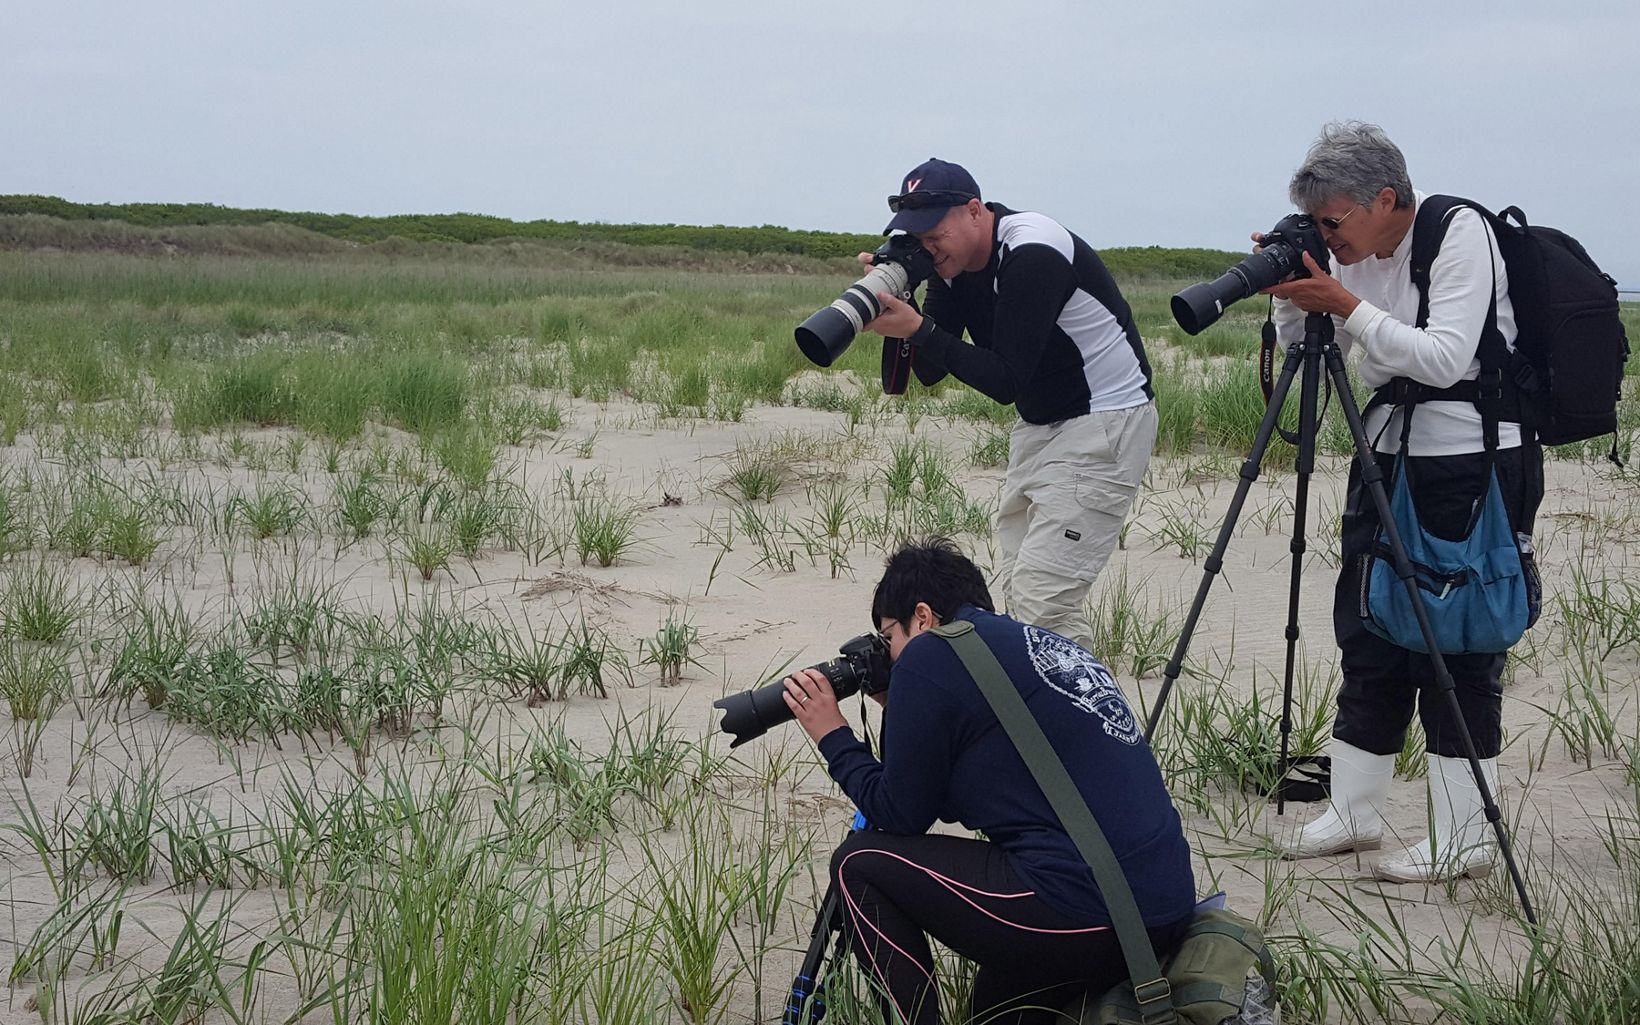 Three people with cameras photograph an unsee animal in the tall grass.